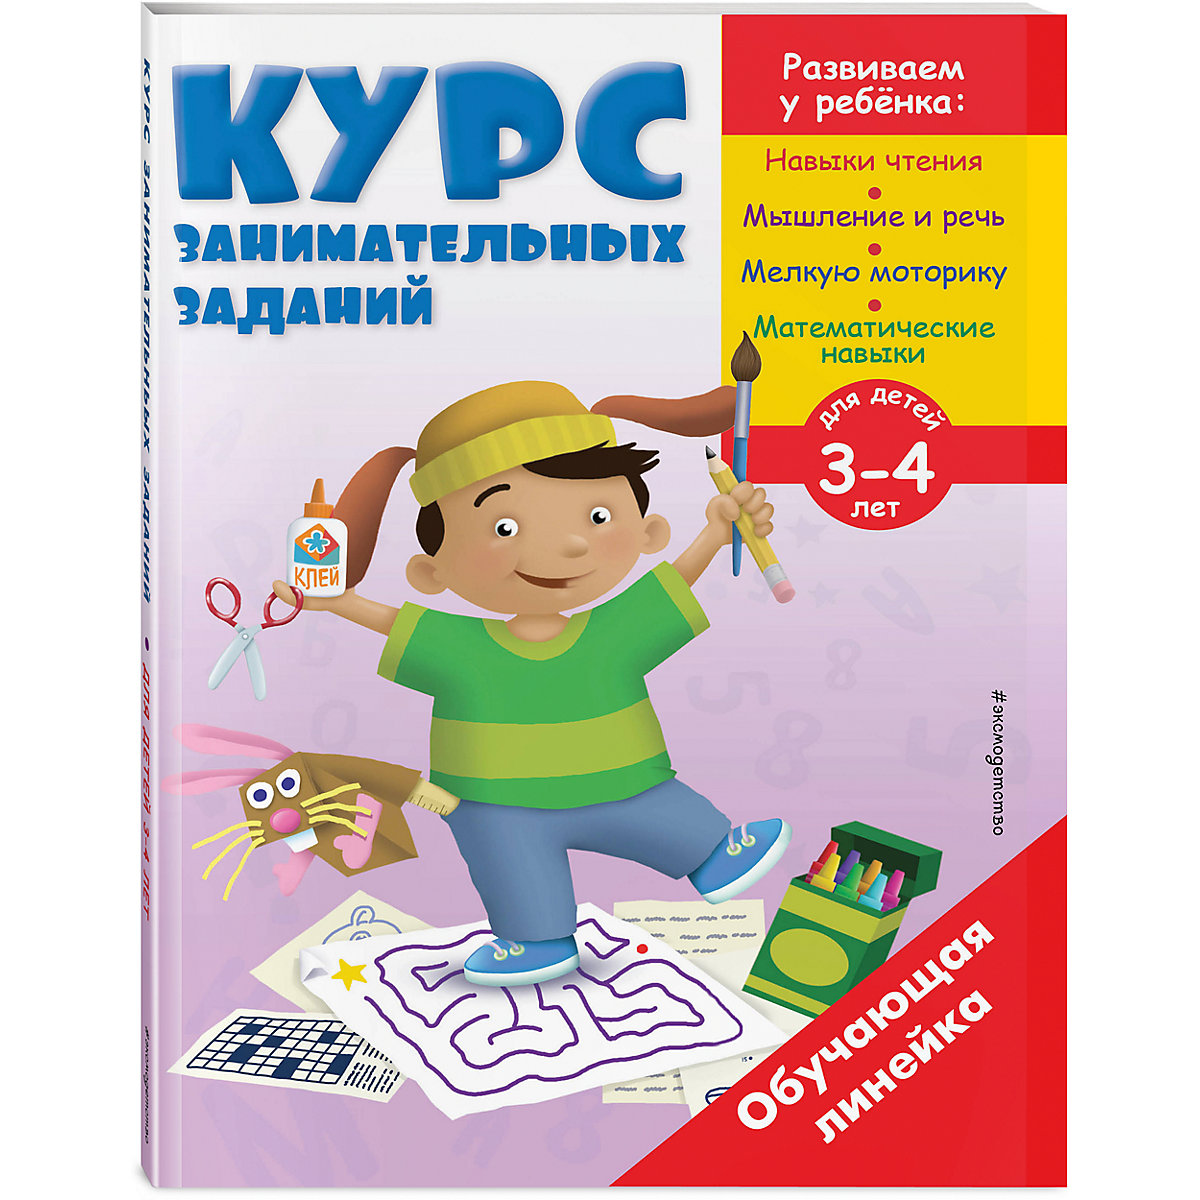 Books EKSMO 7367790 Children Education Encyclopedia Alphabet Dictionary Book For Baby MTpromo